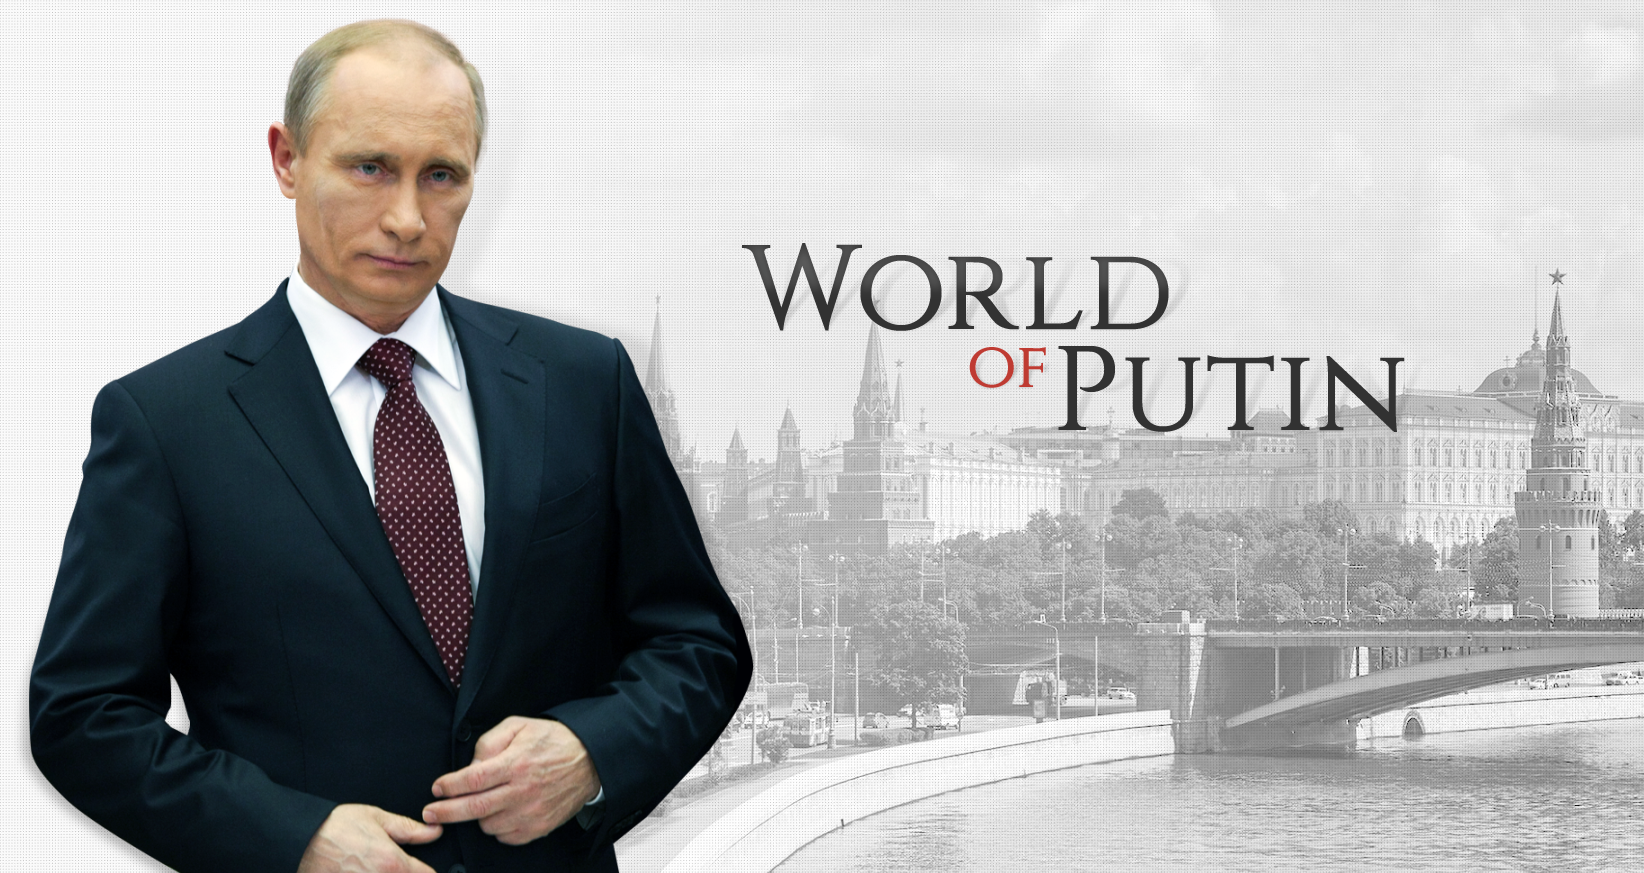 World of Putin владимир путин, путин, россия